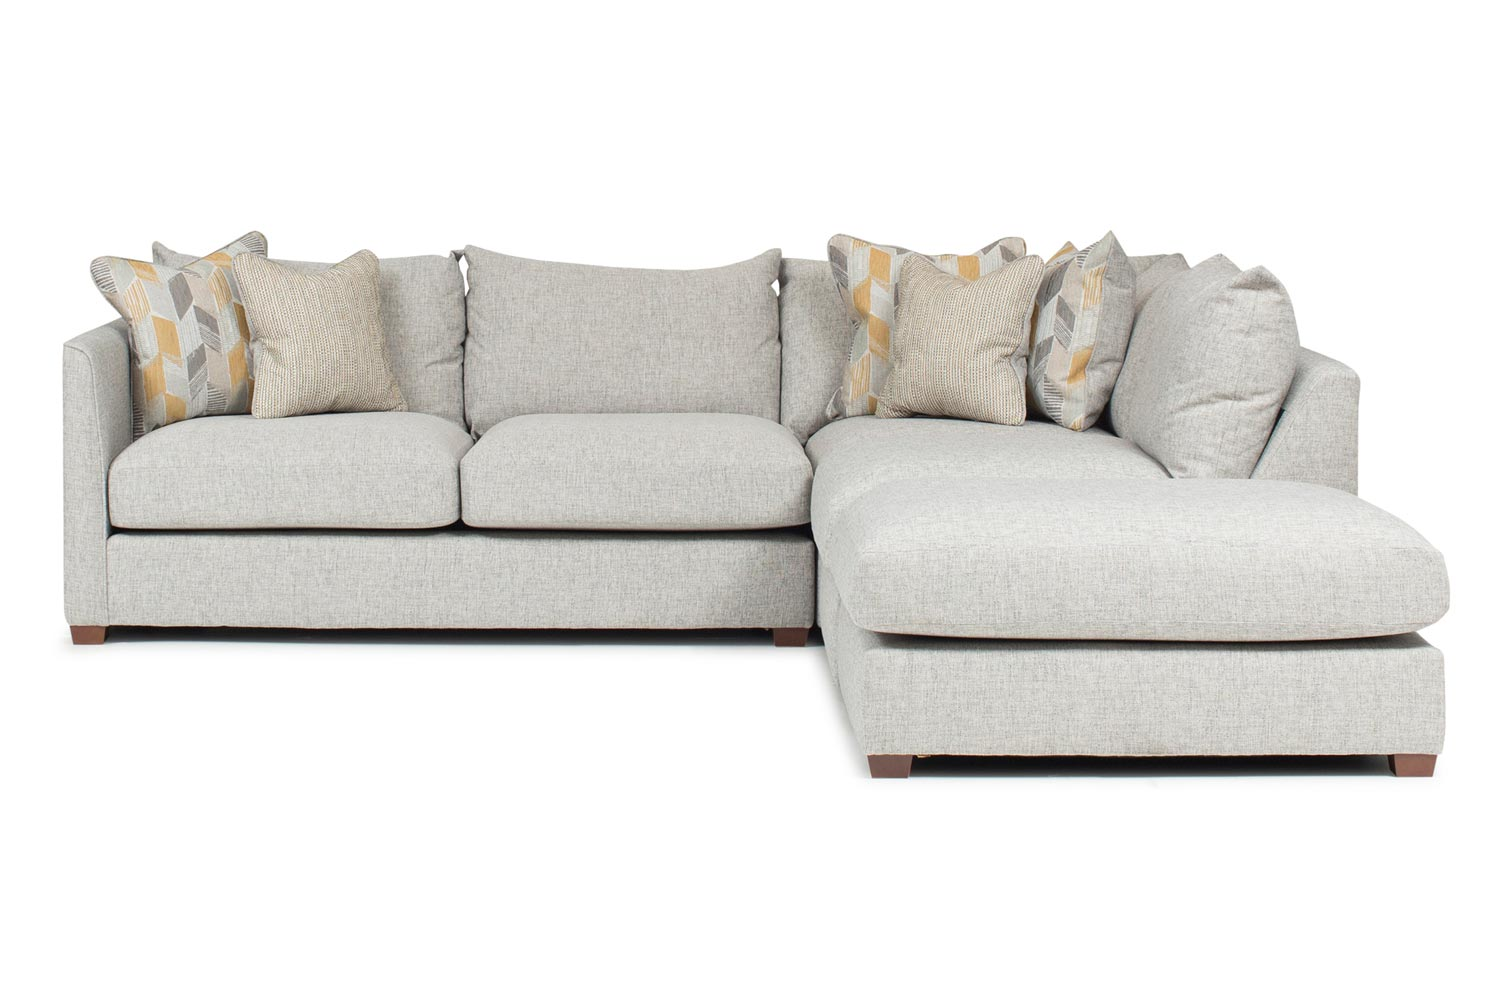 sofa w chaise multi use bed faye corner with ireland